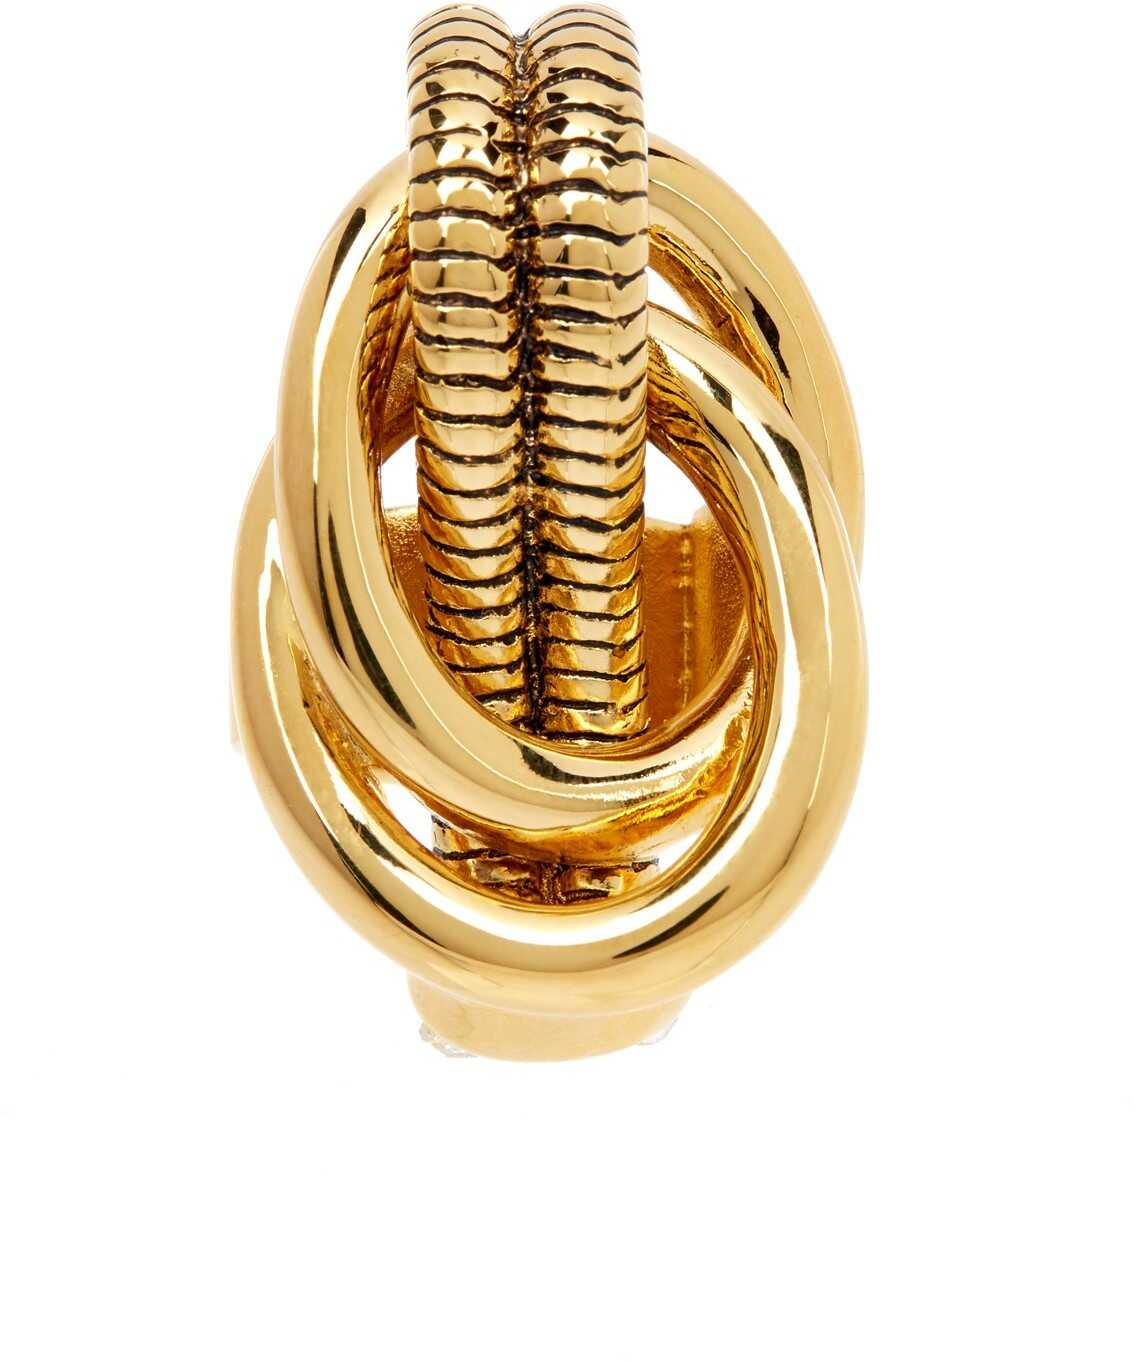 Diane von Furstenberg Gemma Knotted Cocktail Ring - Size 7 GOLD